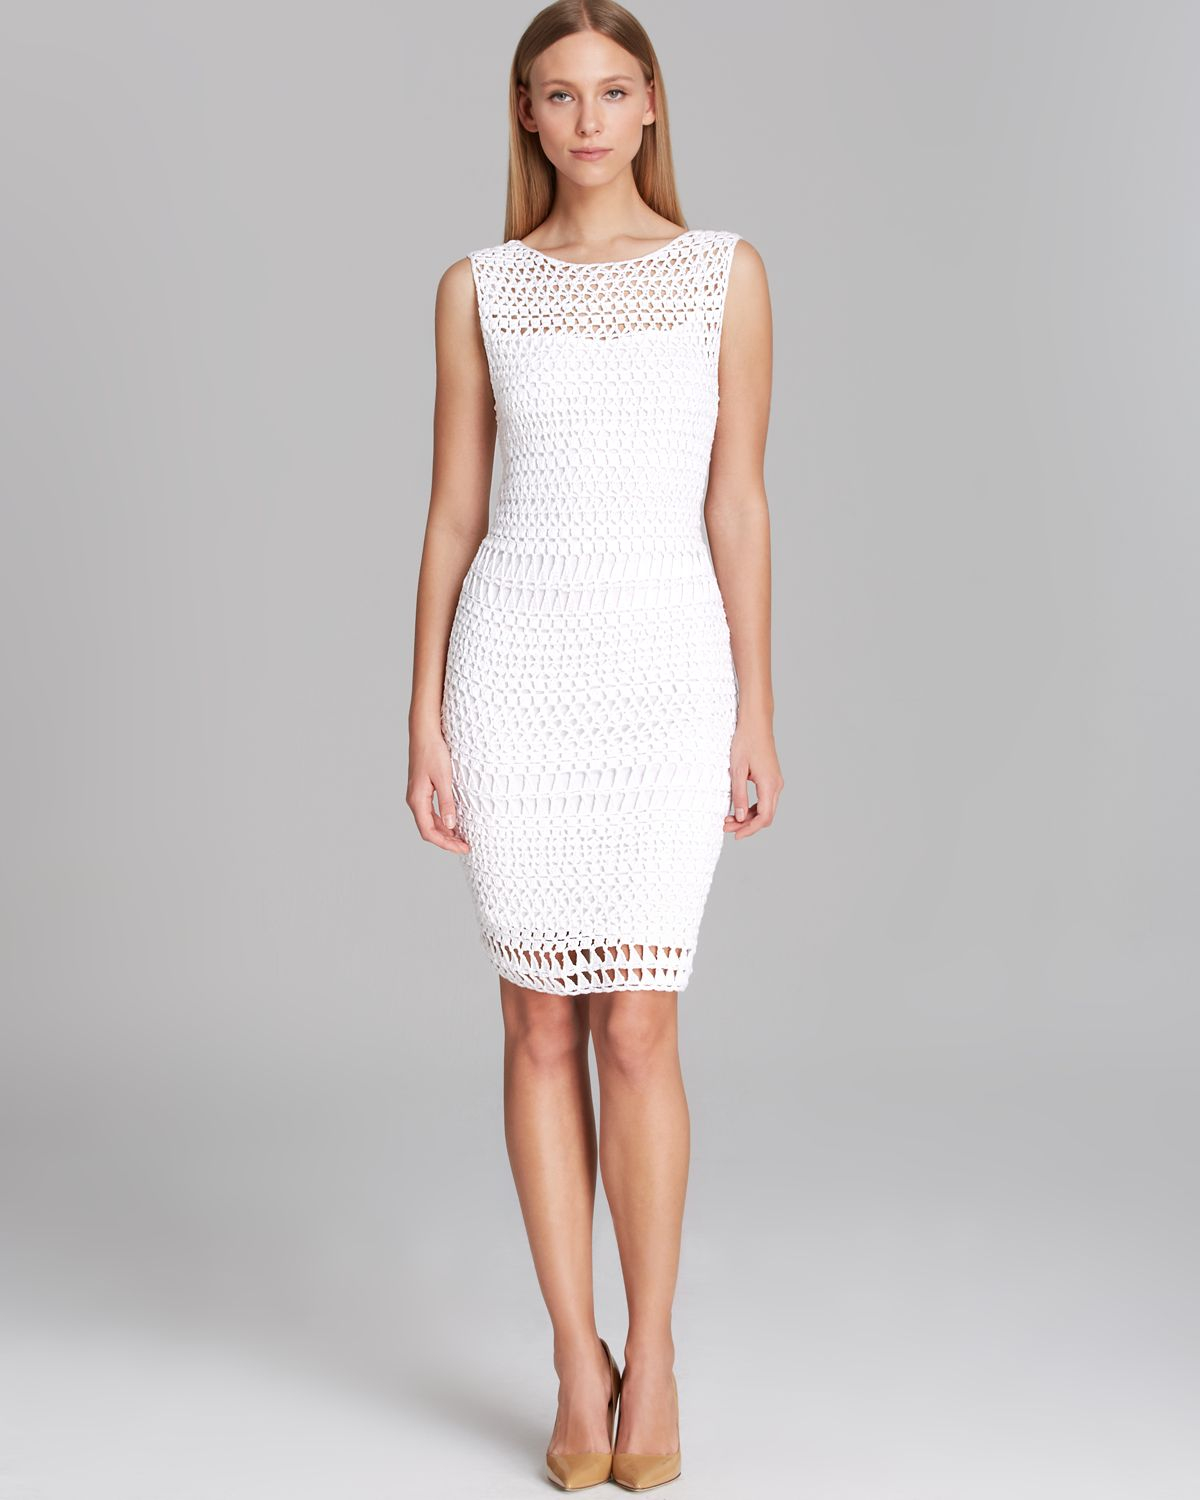 White dress crochet - Gallery Previously Sold At Bloomingdale S Women S Crochet Dresses